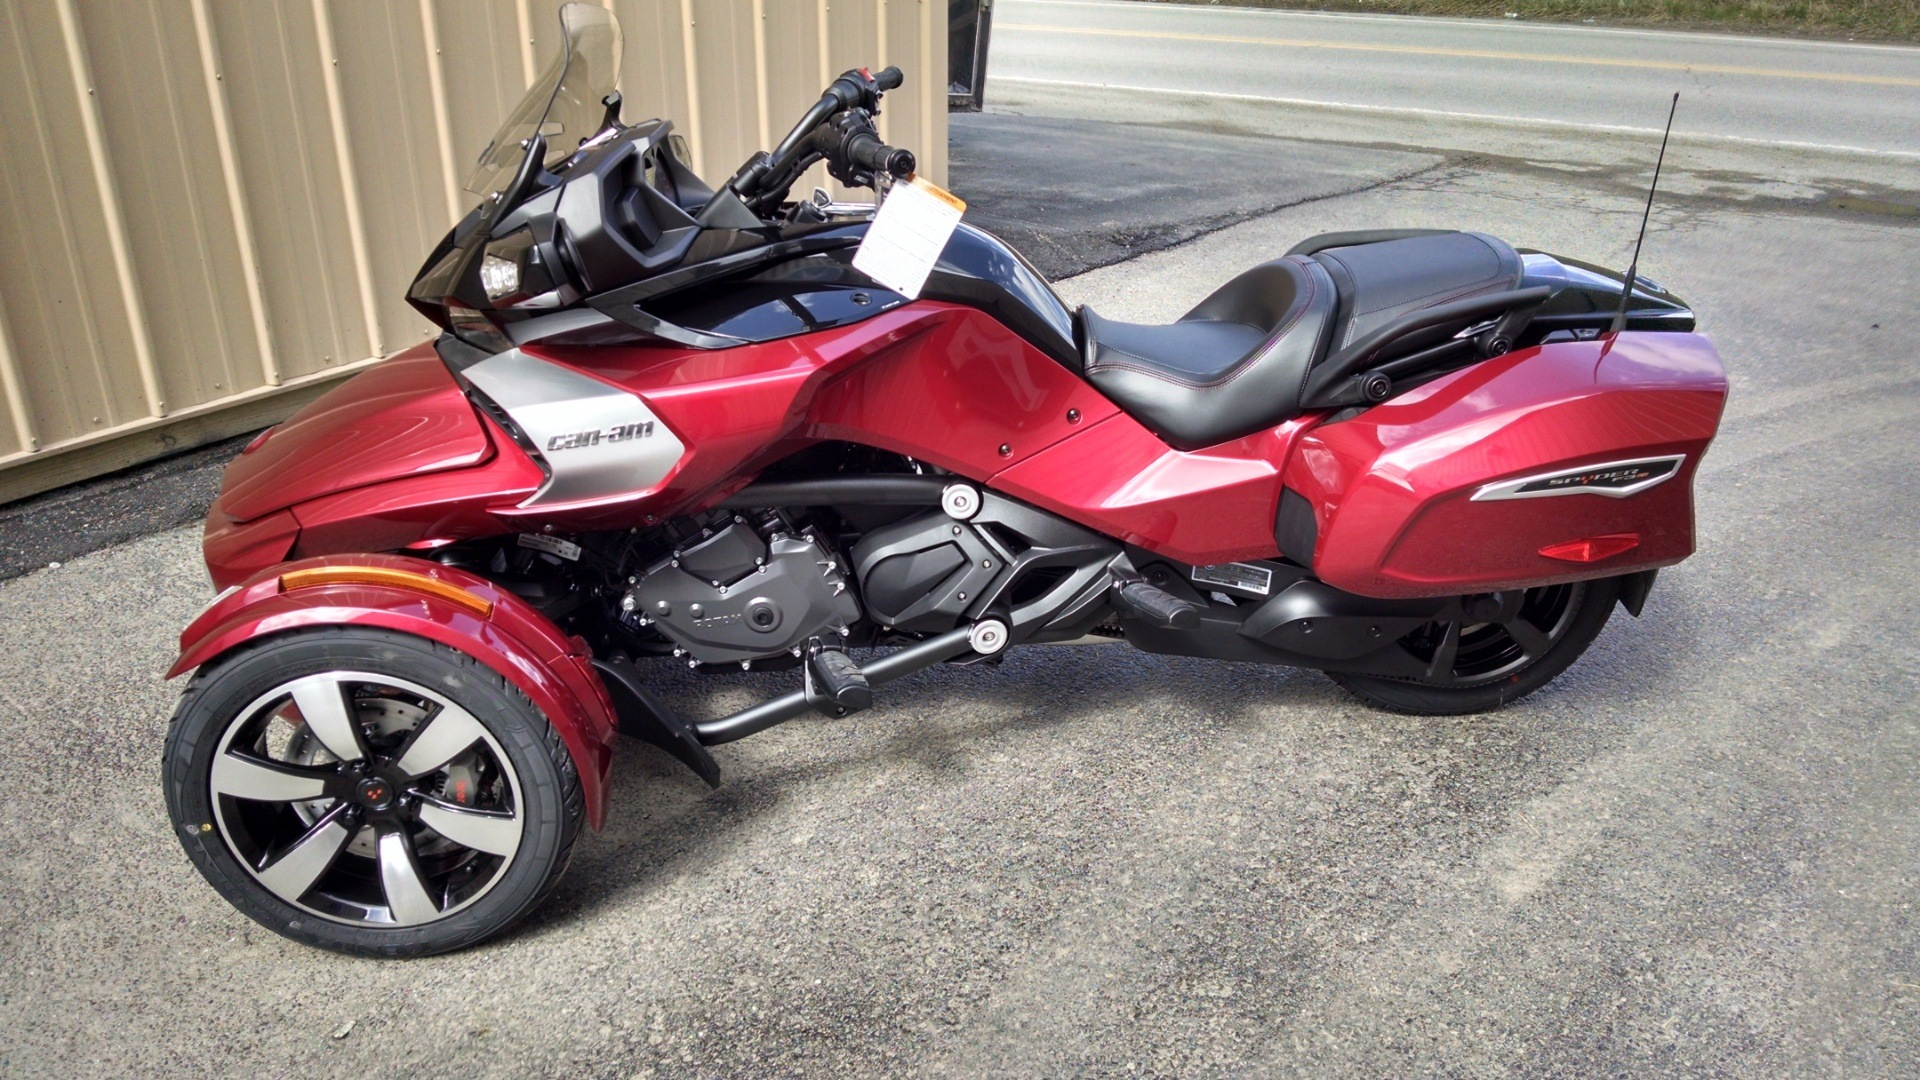 2016 can am spyder f3 t for sale claysville pa 526327. Black Bedroom Furniture Sets. Home Design Ideas